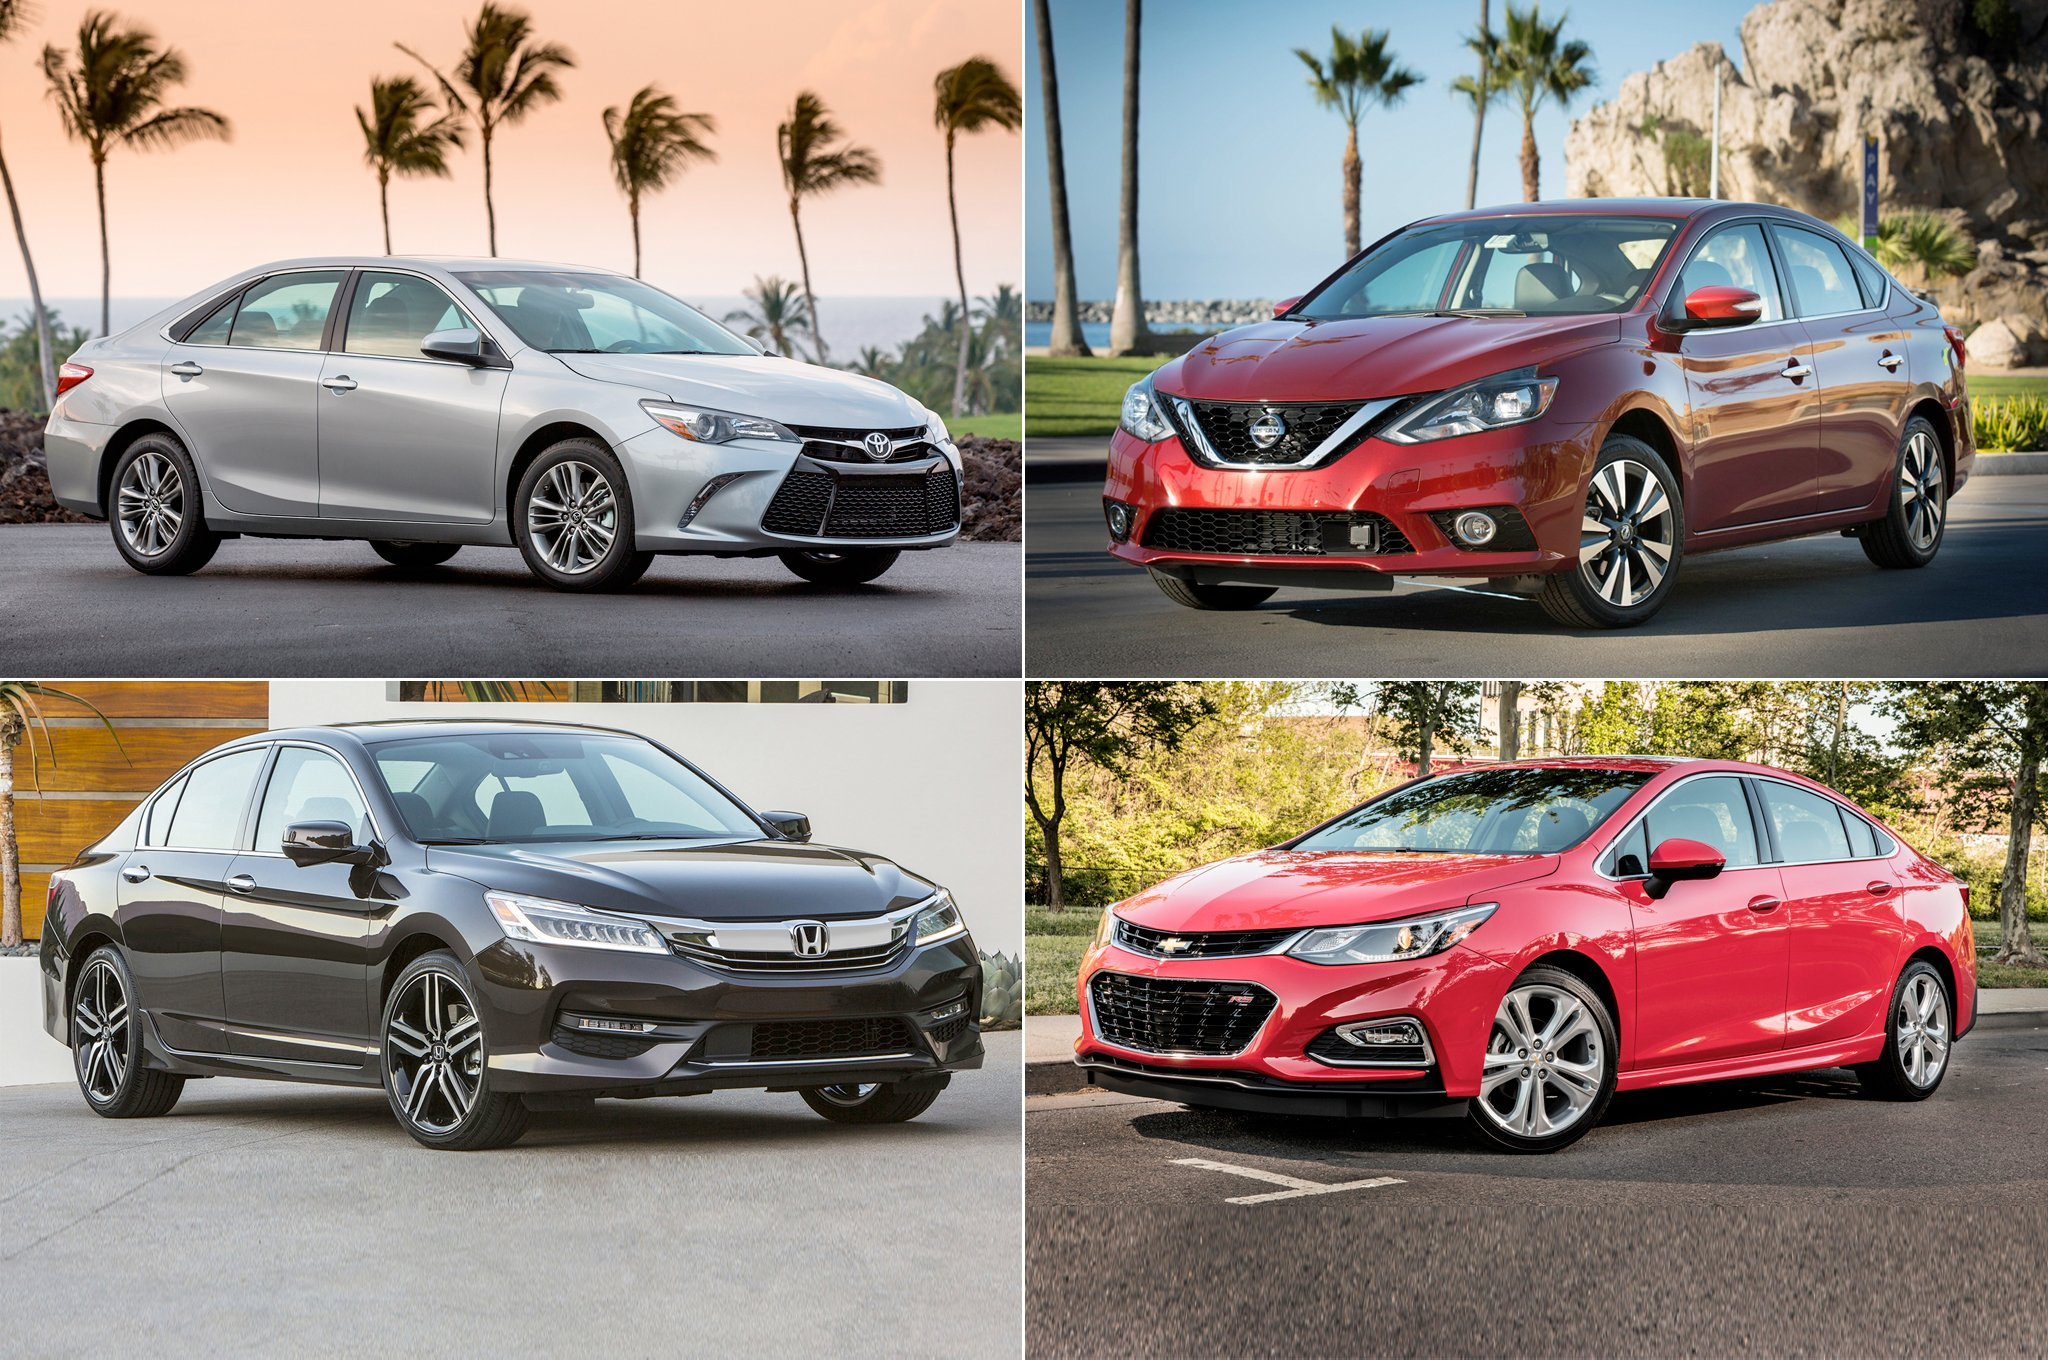 Top 10 Best Selling Cars of 2016